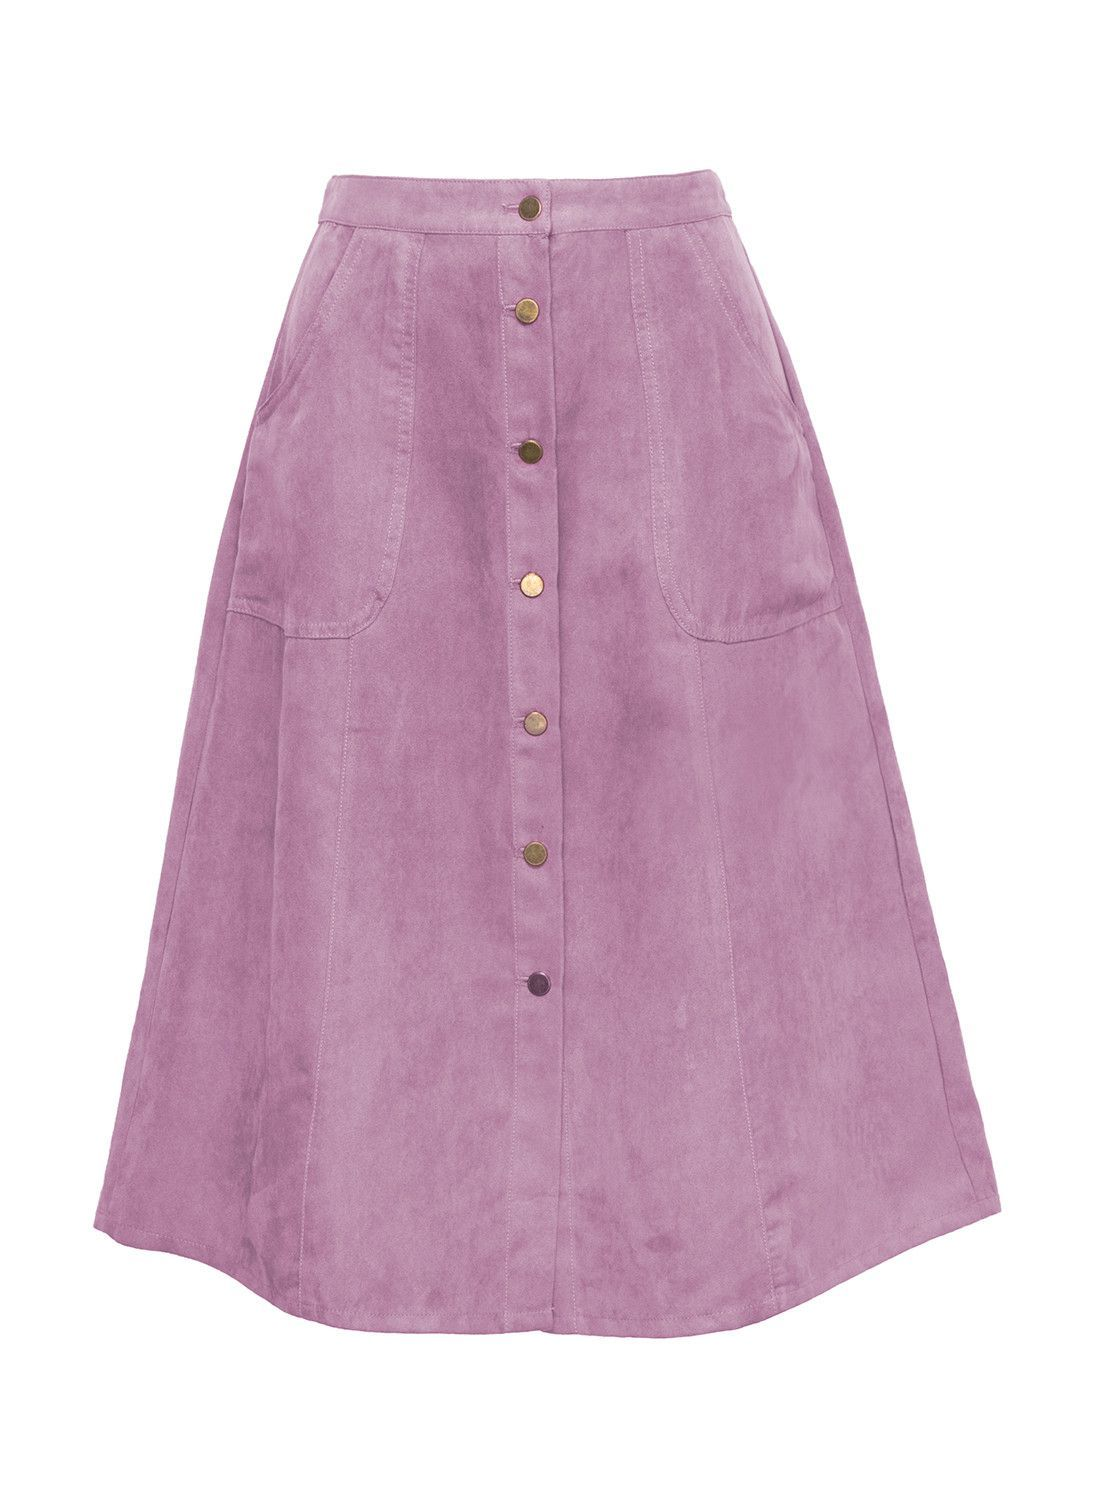 e1feaa633f The denim button front skirt trend is in full force right now, but knowing  us, we had to find a way to make this trend unique for our Pale Violet  customers.